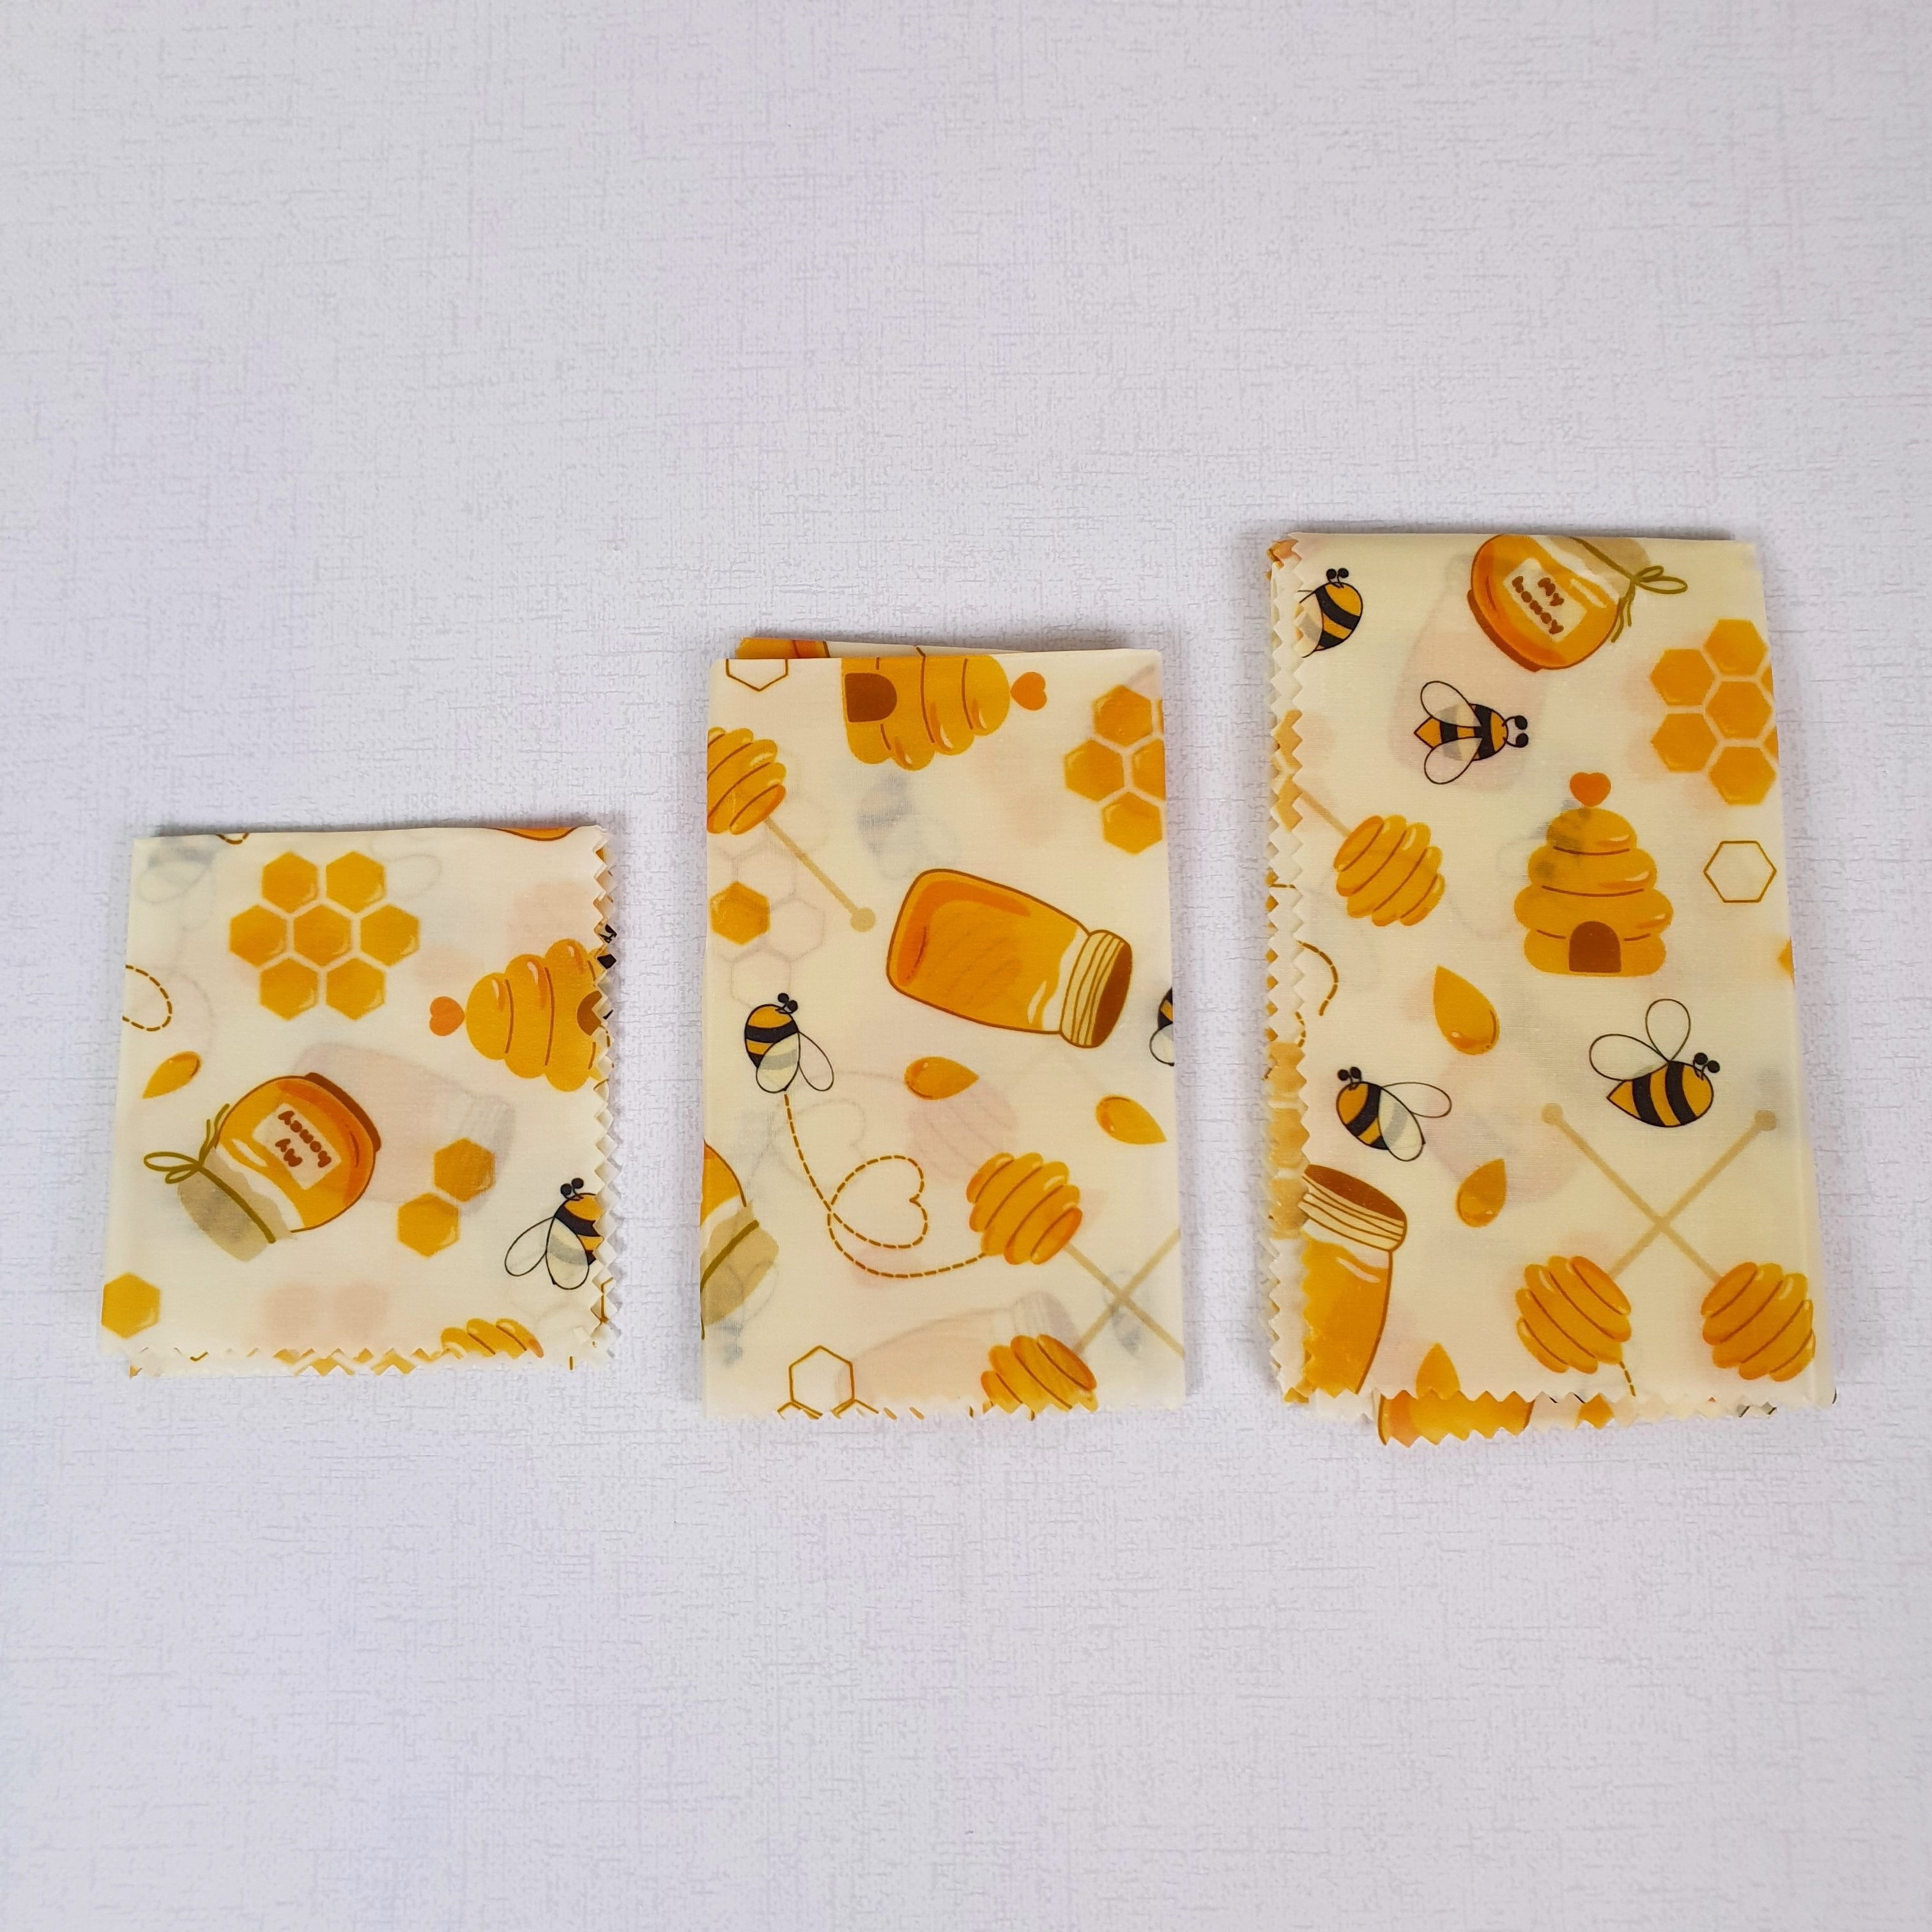 Natural Beeswax Sandwich Wrap Set on Table